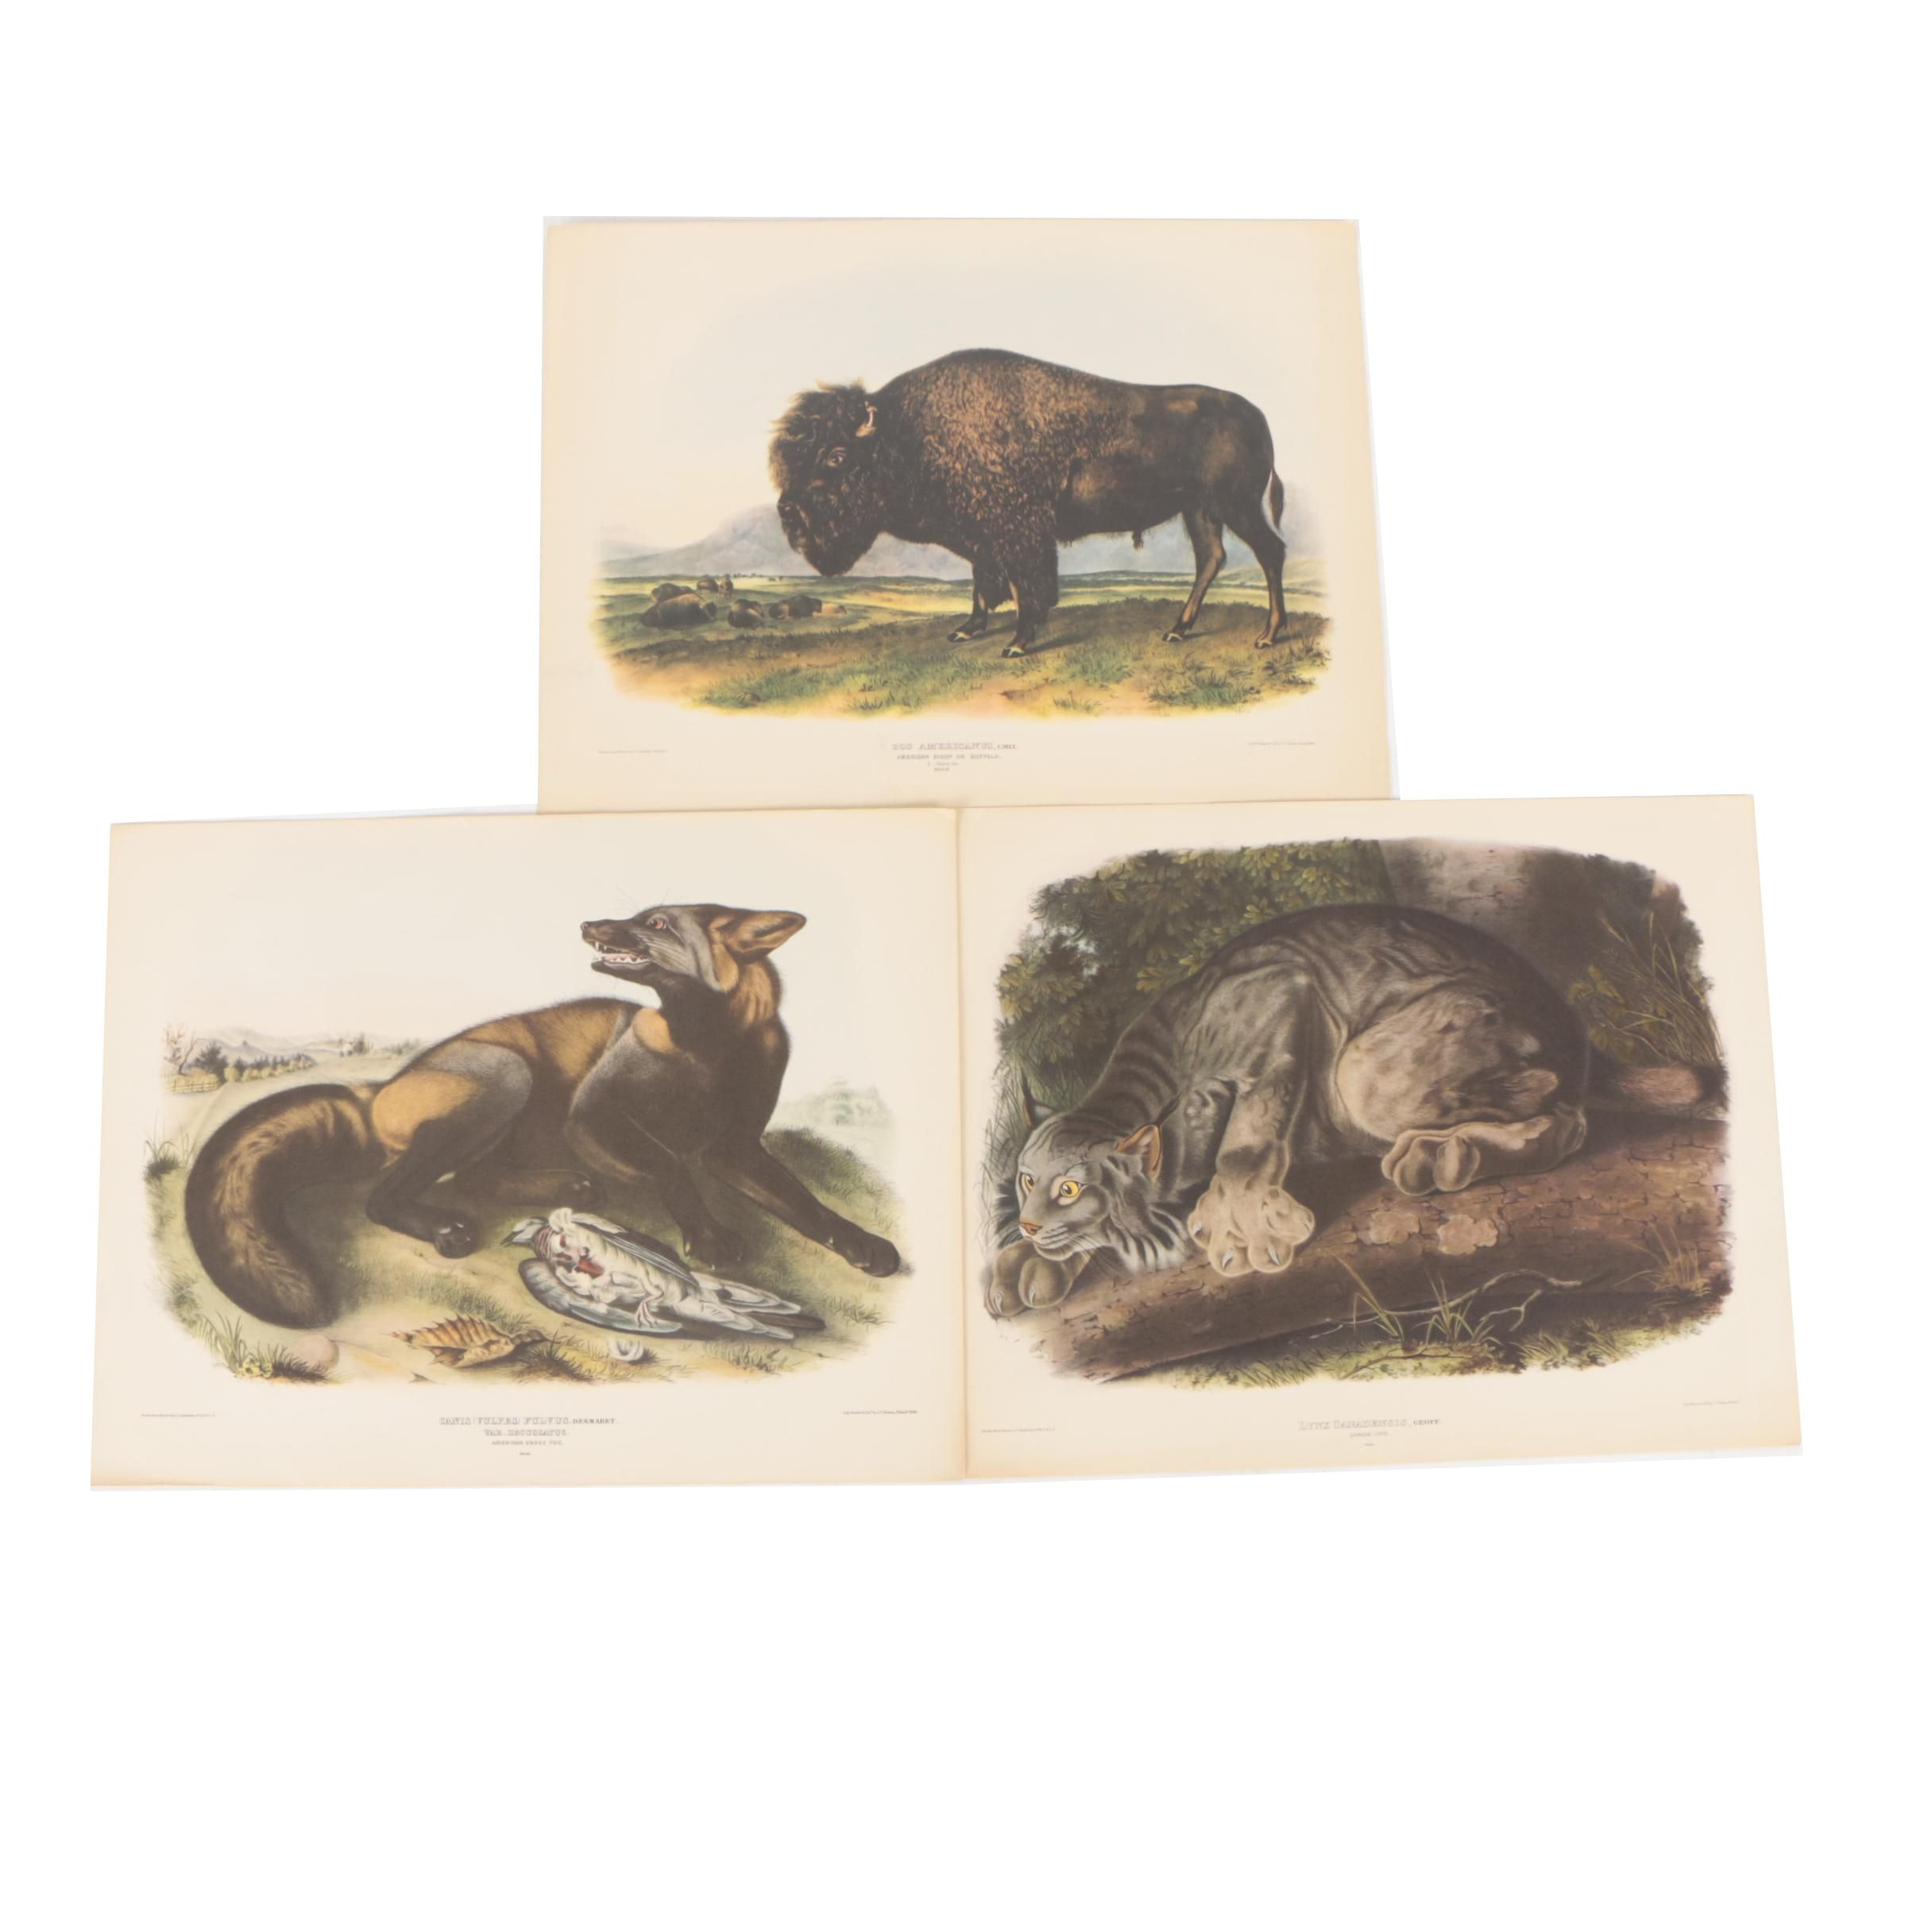 Three Vintage Offset Lithographs After John James Audubon